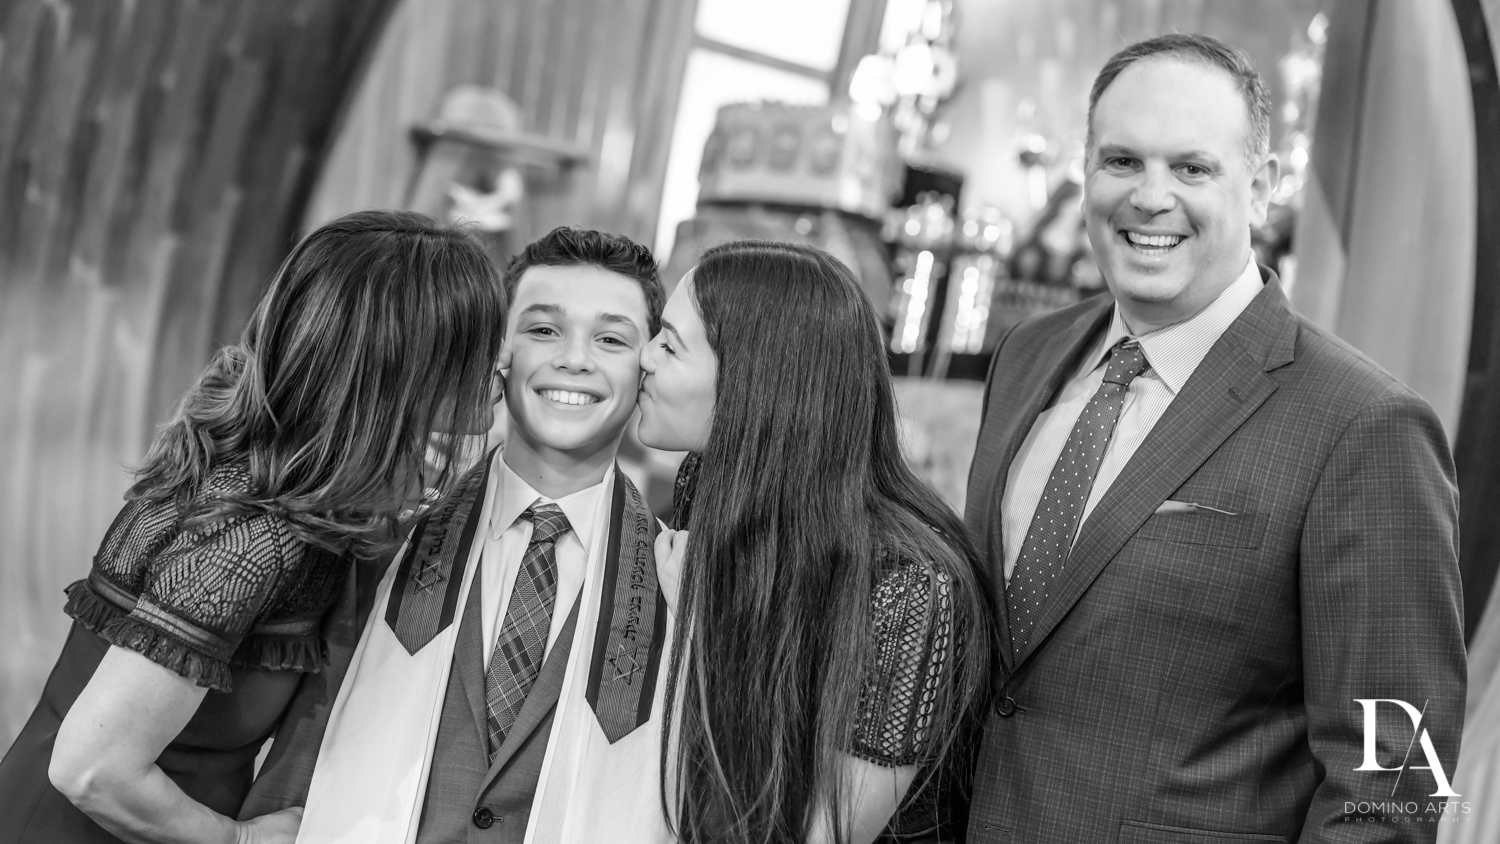 B&W pictures at Football Theme Bar Mitzvah at Temple Beth El and Royal Palm Yacht Club by Domino Arts Photography